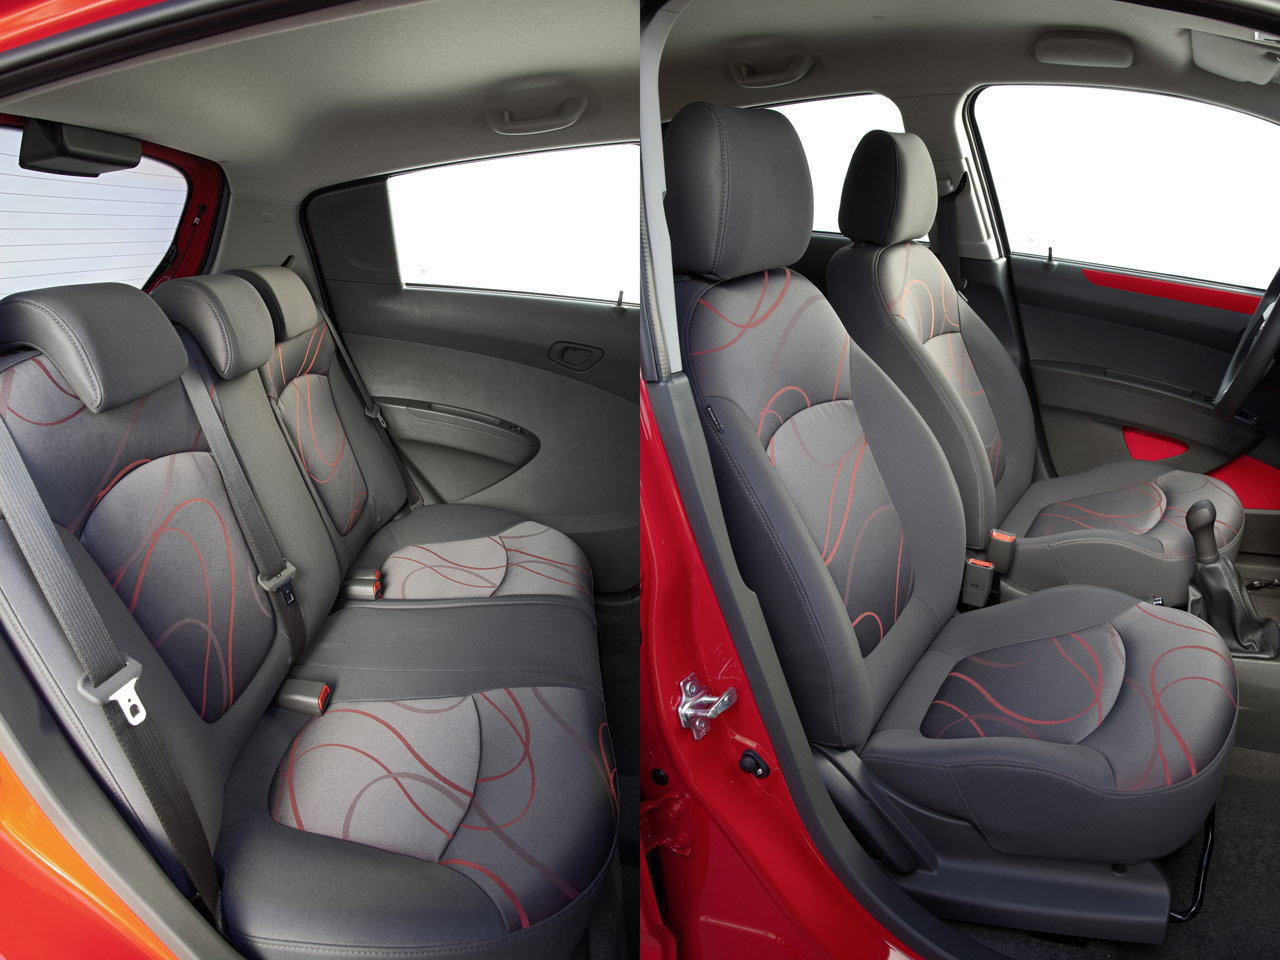 CHEVROLET SPARK 1.2 LT reasonable interior space against ...